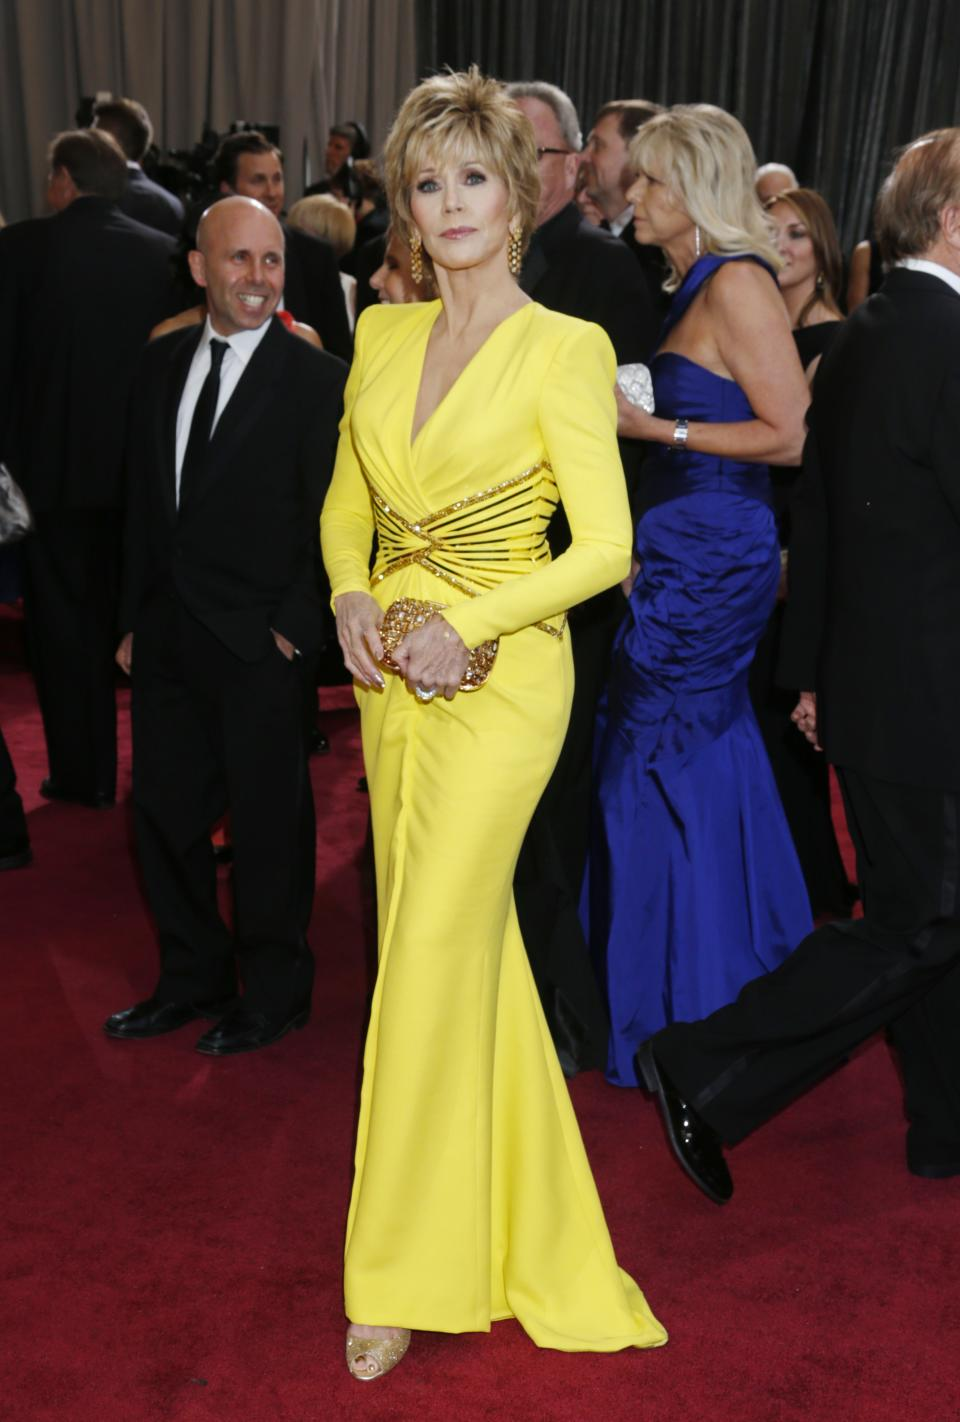 Jane Fonda arrives at the Oscars at the Dolby Theatre on Sunday Feb. 24, 2013, in Los Angeles. (Photo by Todd Williamson/Invision/AP)